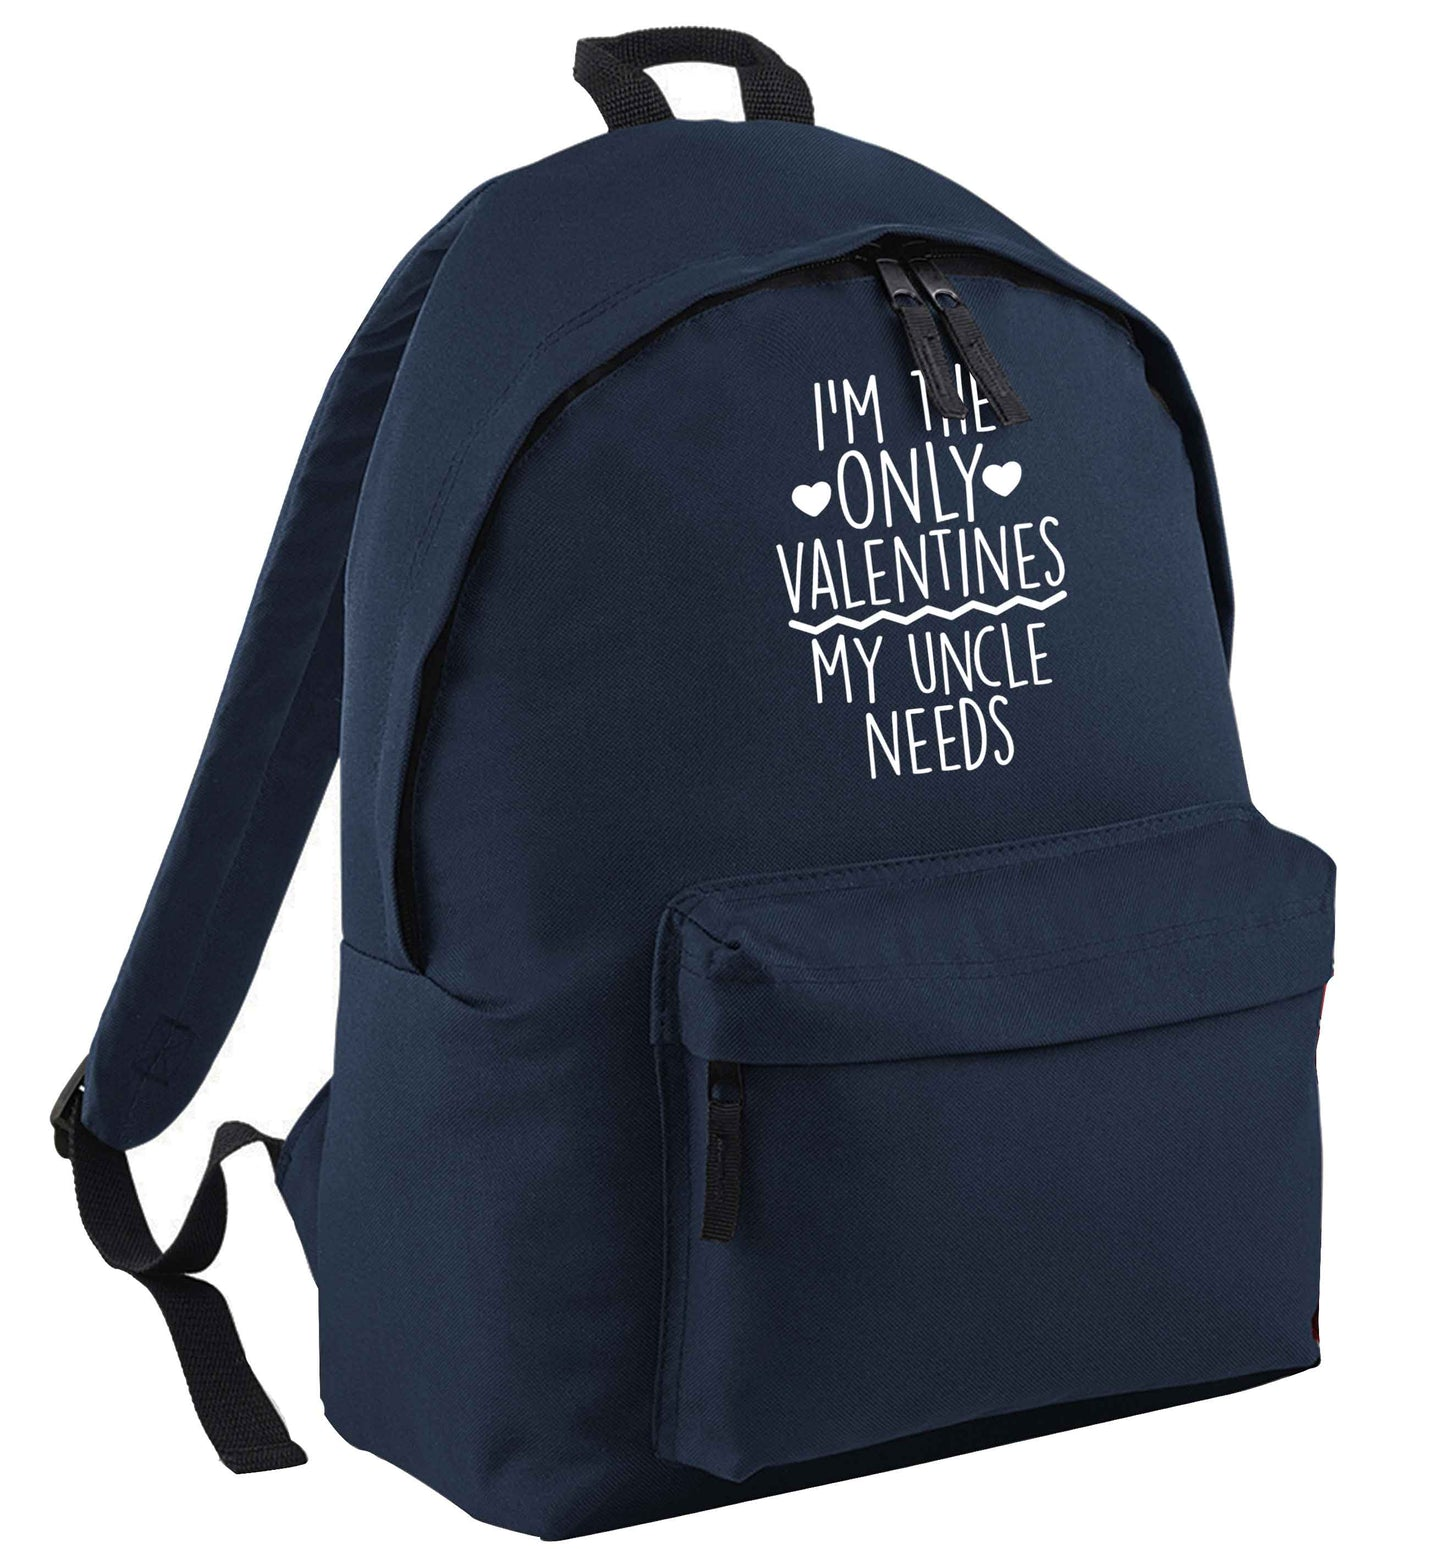 I'm the only valentines my uncle needs navy childrens backpack